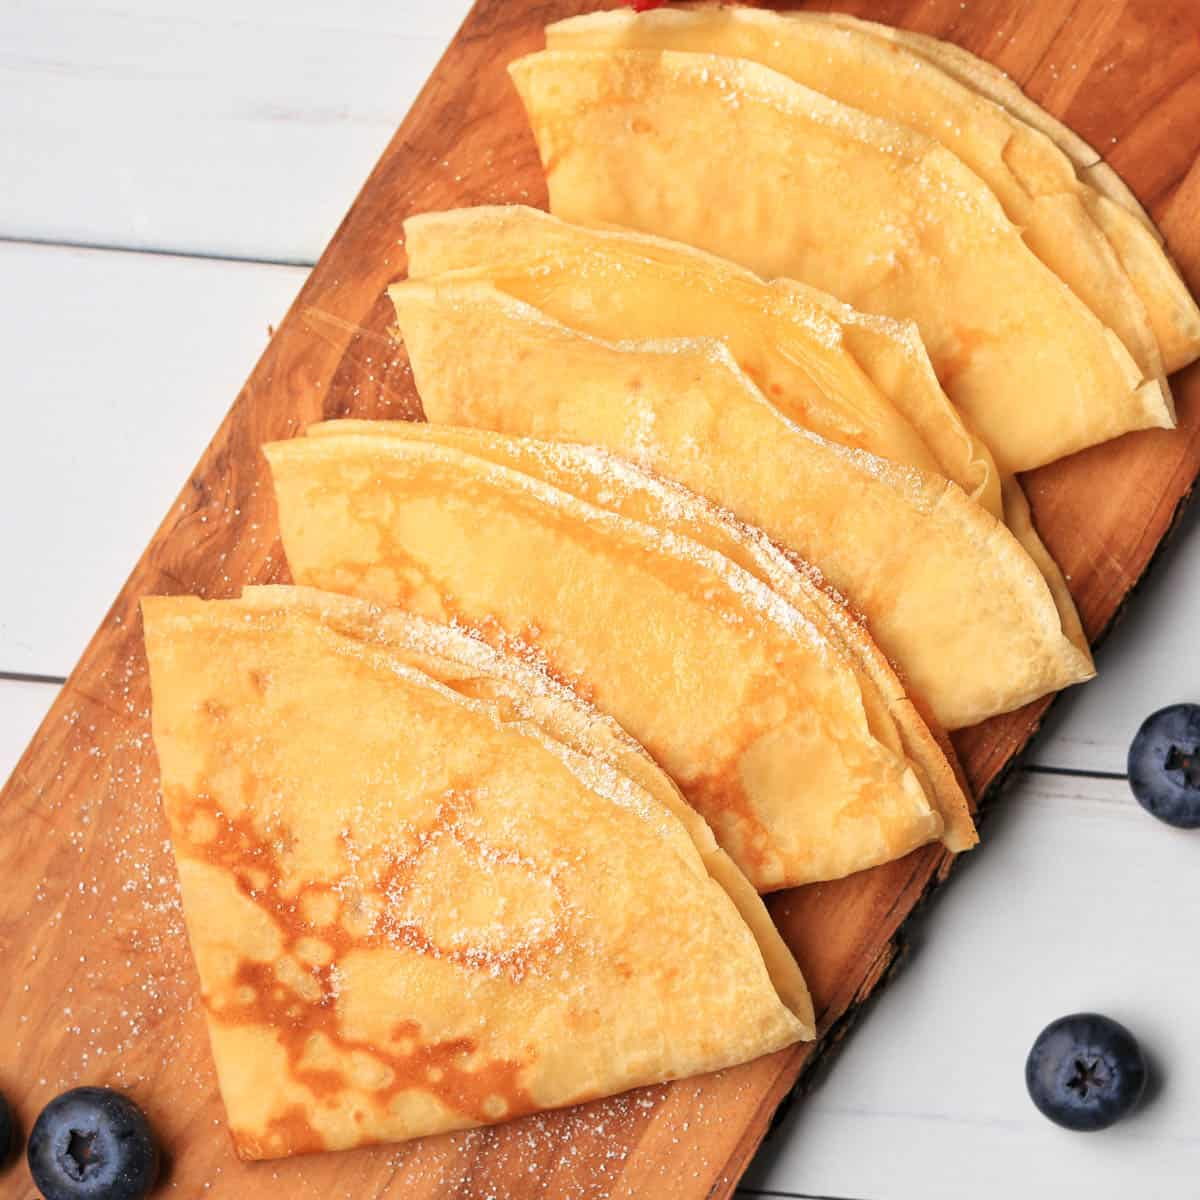 Thermomix Crepes folded on a board